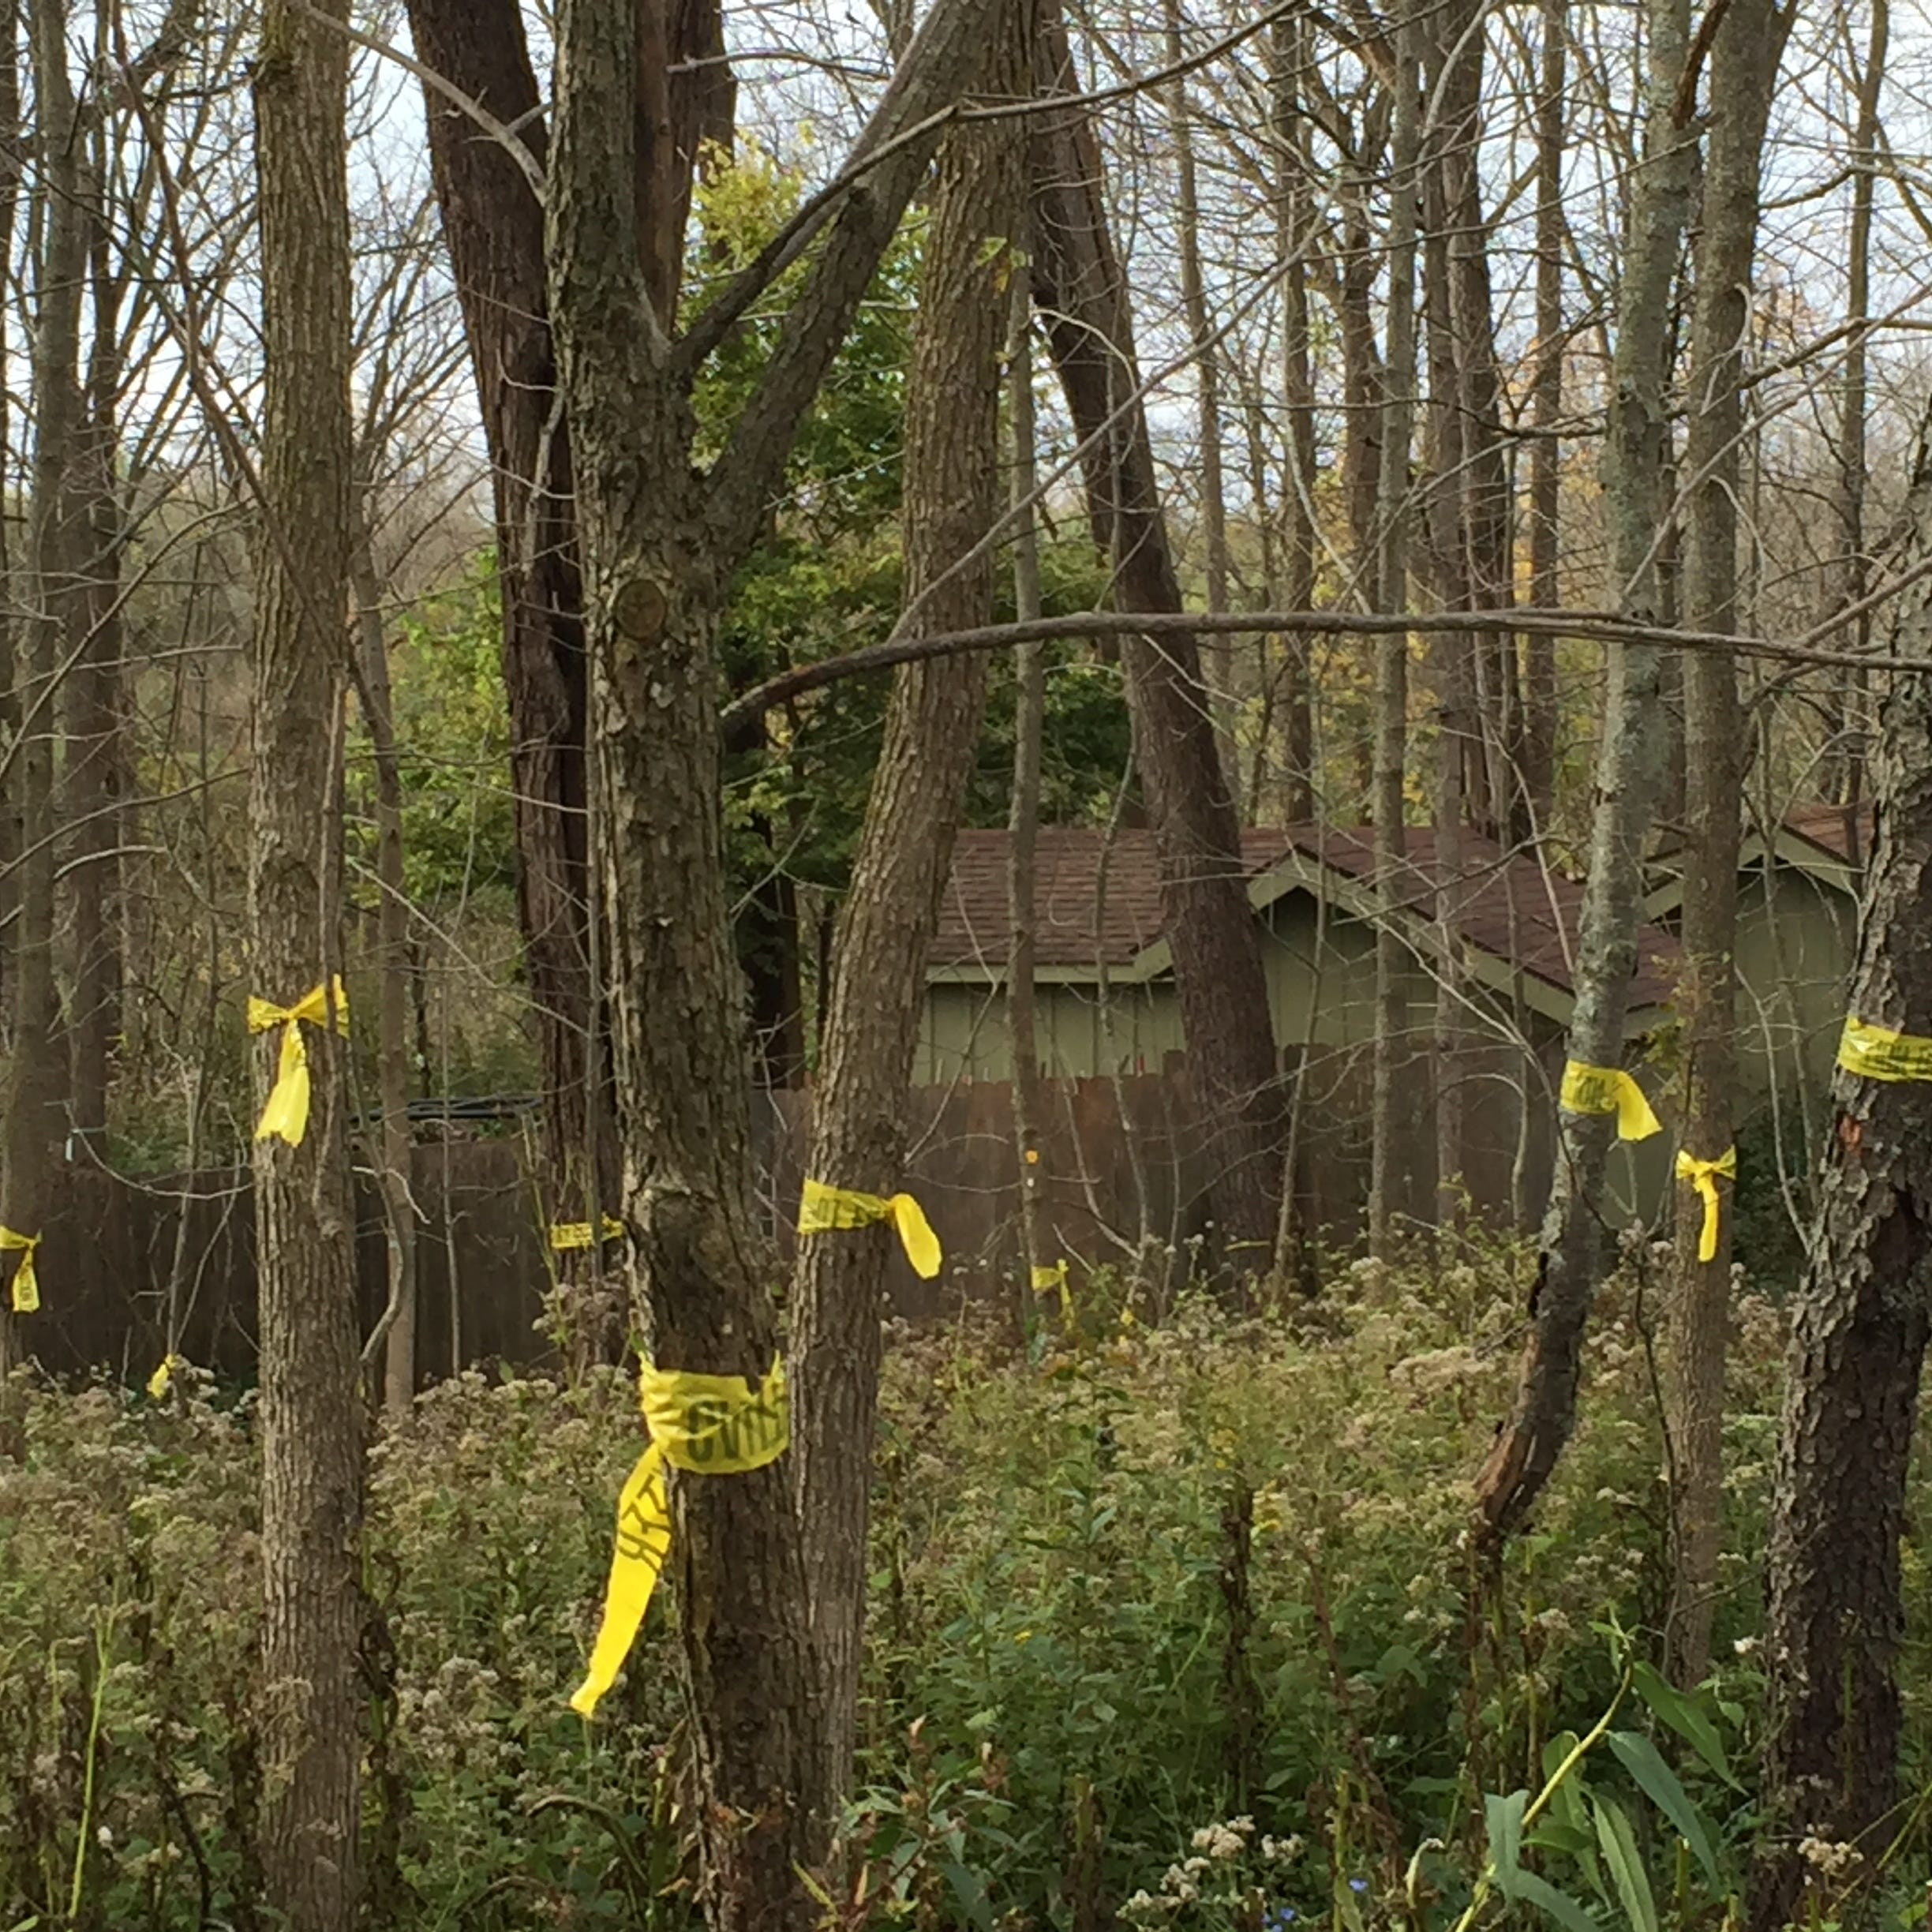 More than 300 hardwood trees at Wehr Nature Center unintentionally killed by herbicide